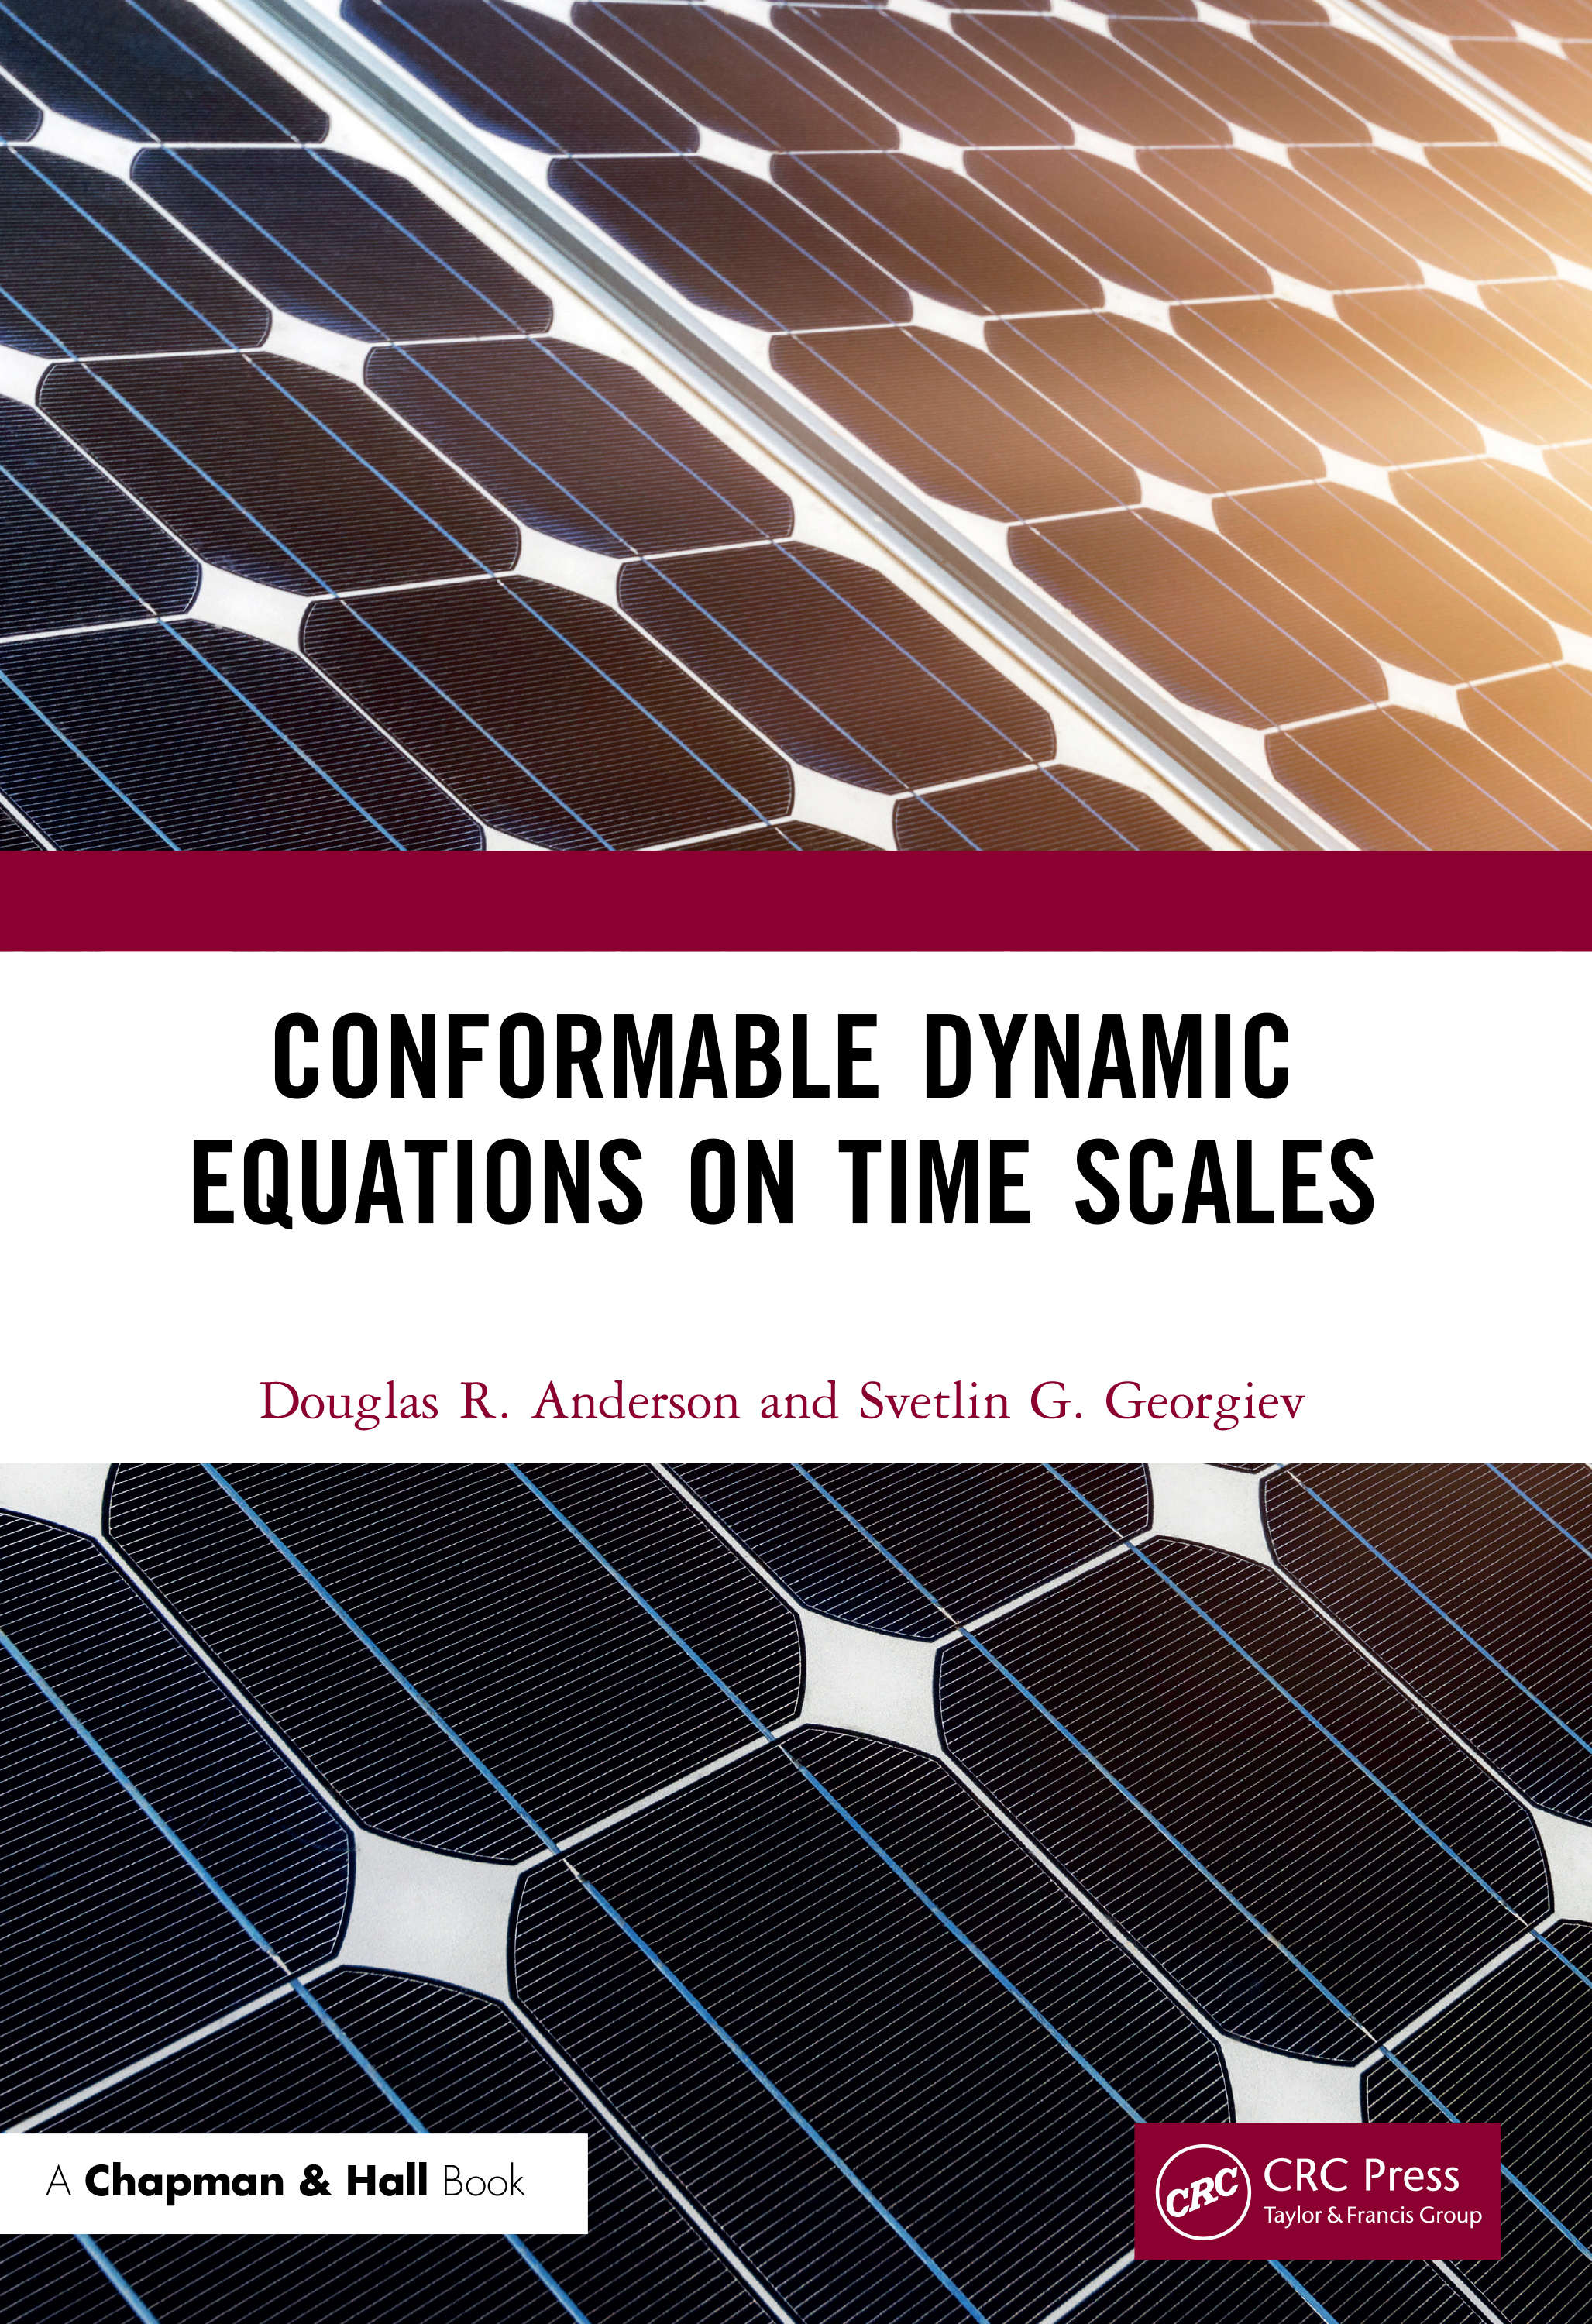 Conformable Dynamic Equations on Time Scales